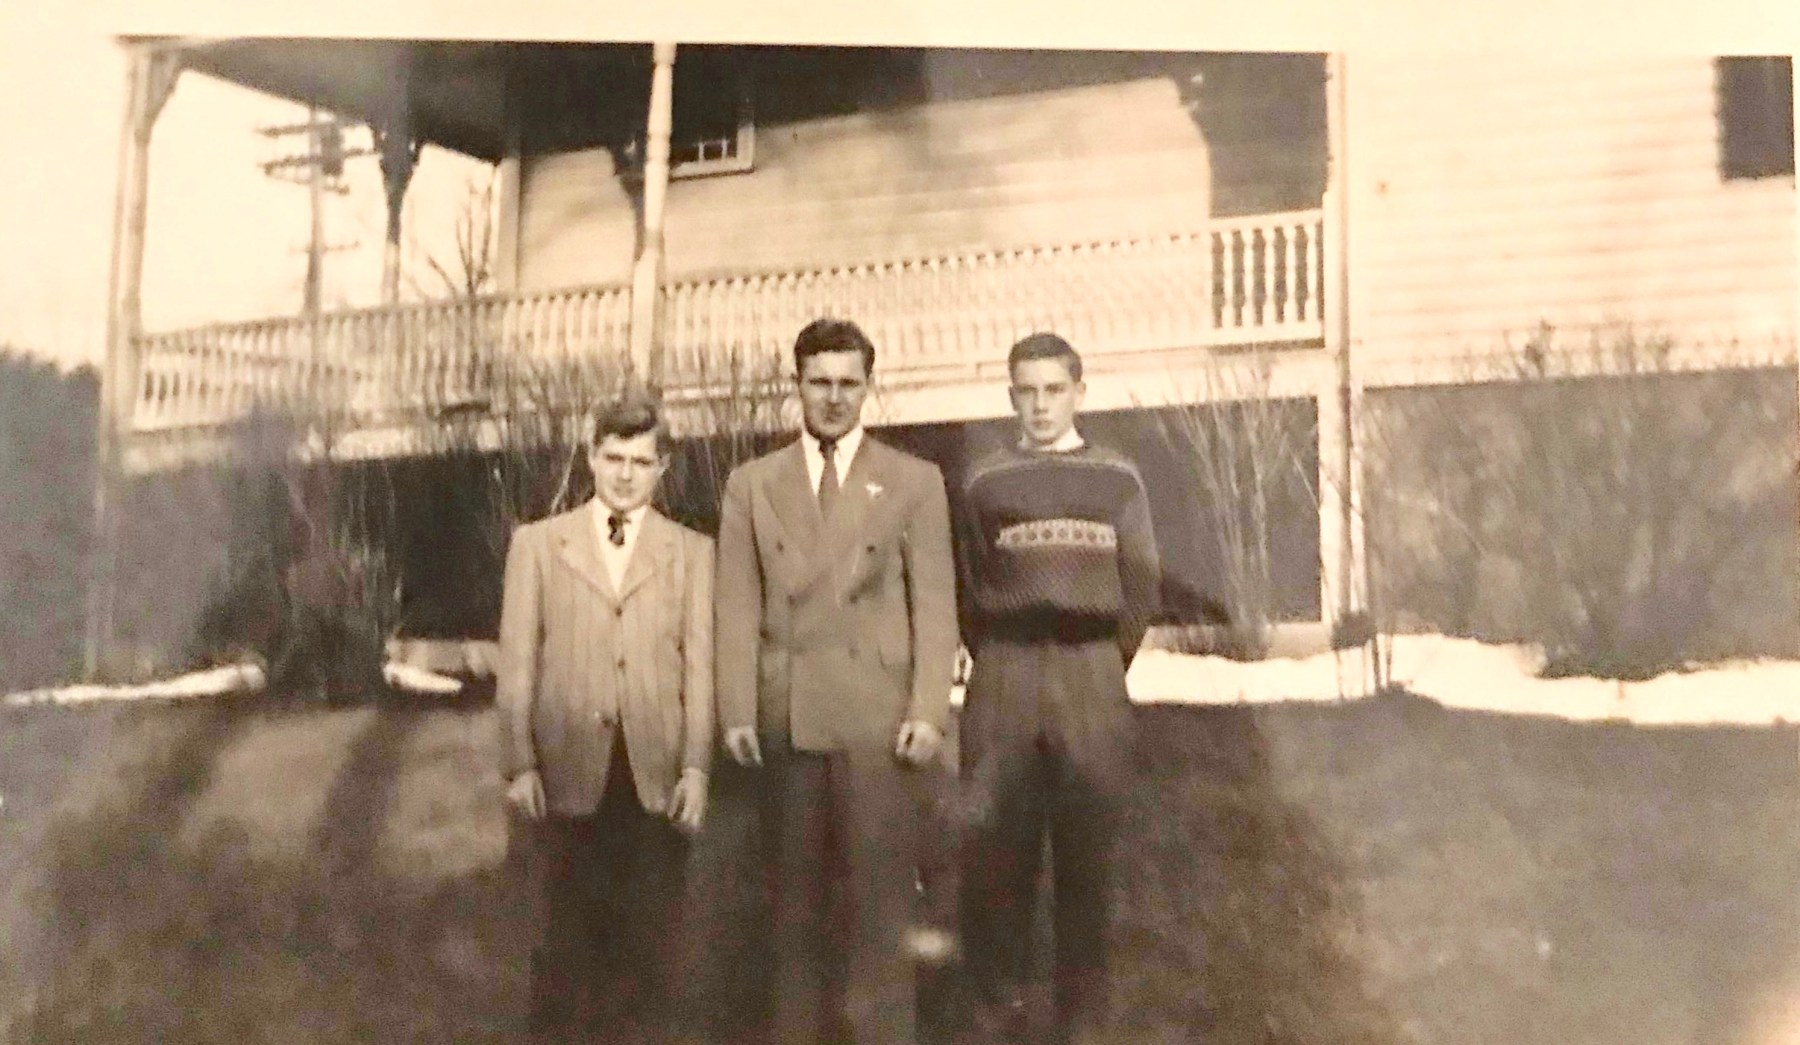 Billie and Jimmy Ray (left and center) and mystery man. Burlington MA